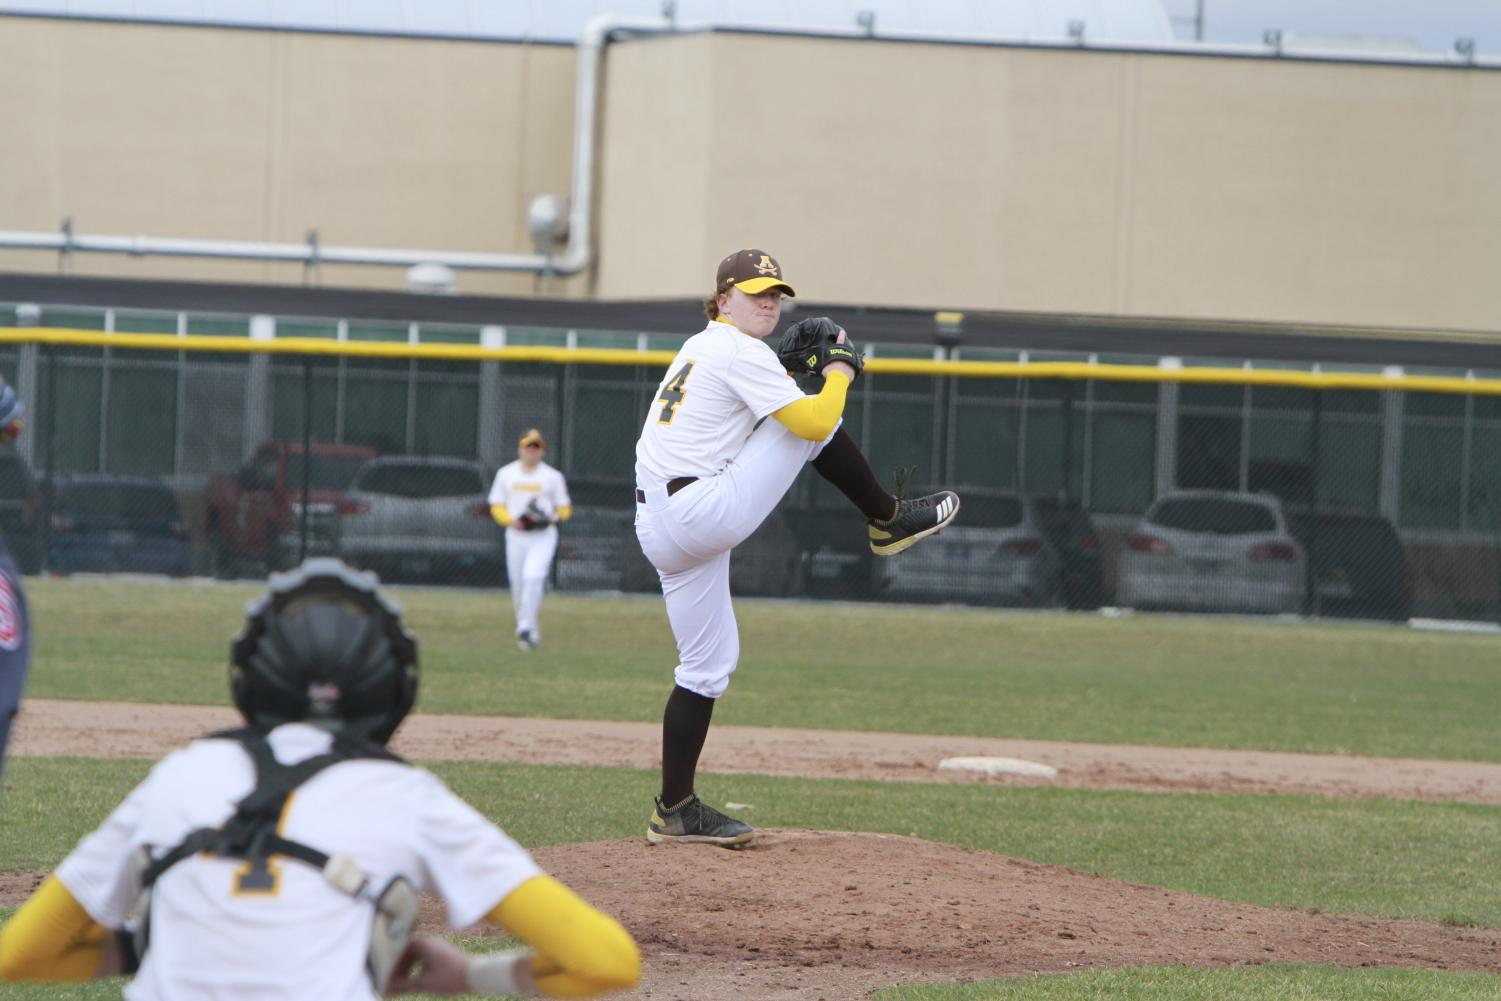 Ben Patton pitching for Rochester Adams.